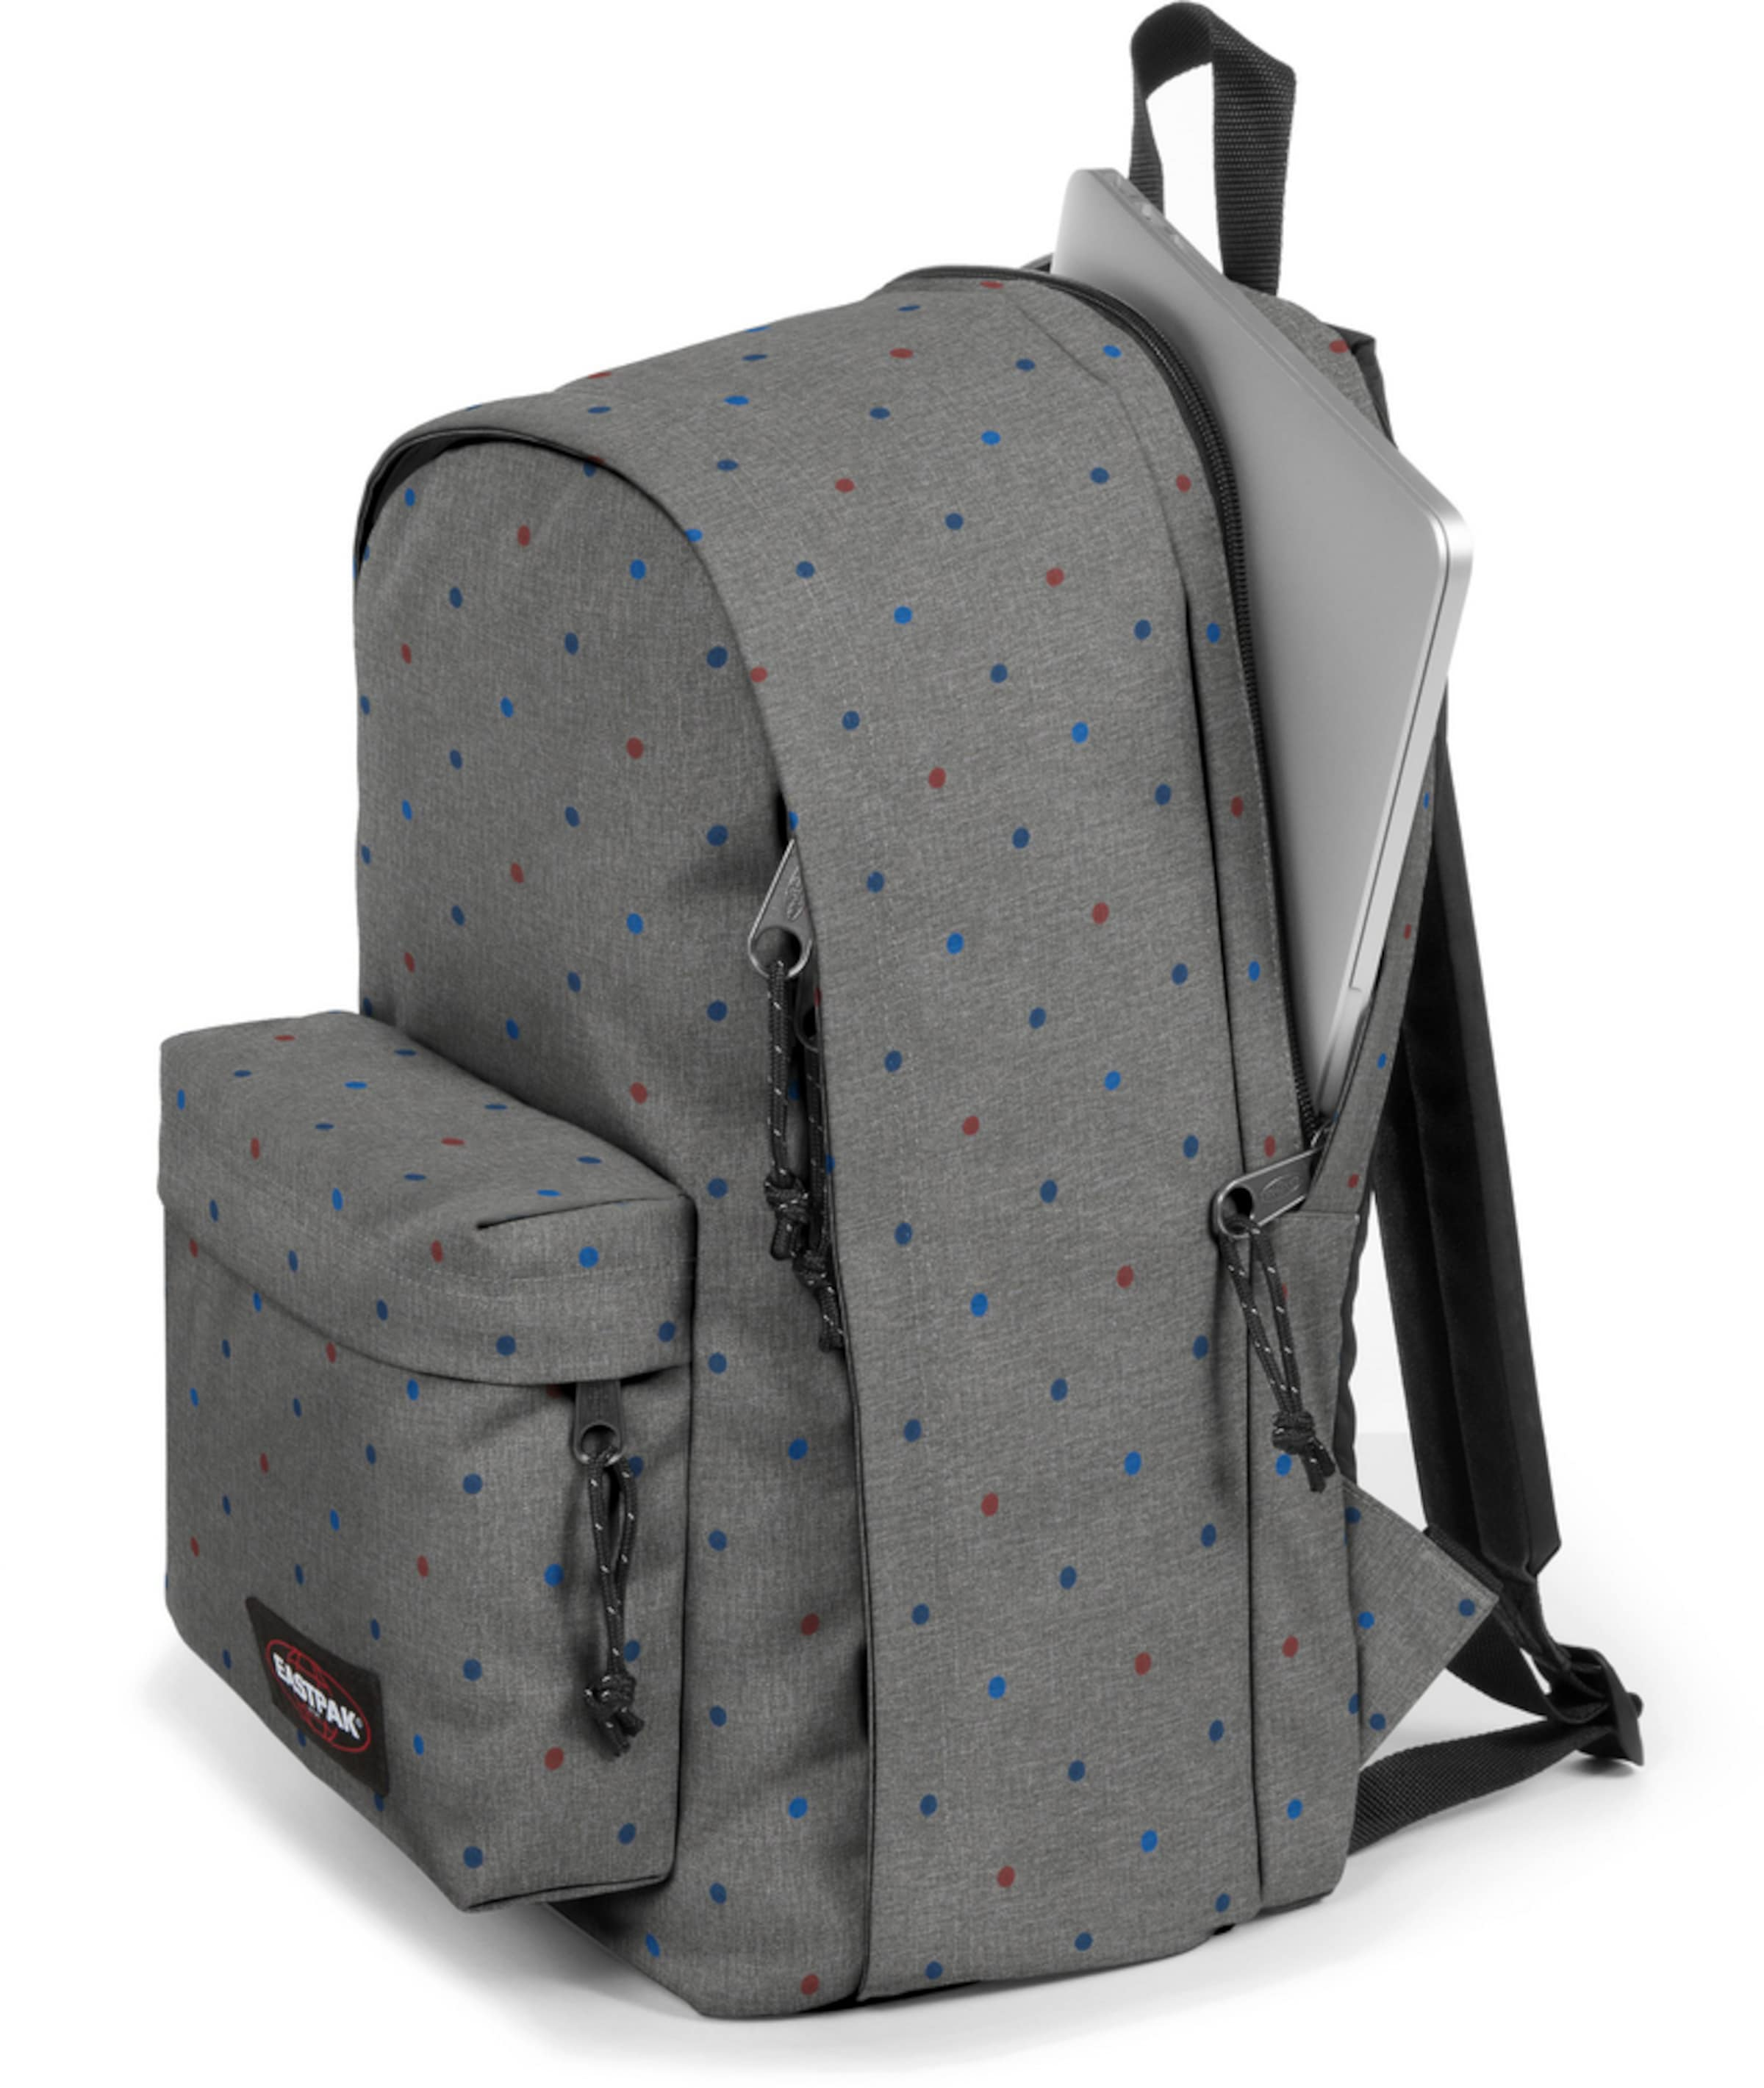 Laptopfach 'BACK EASTPAK mit TO EASTPAK trio dots' Rucksack WORK Rucksack waI1xZXqn1